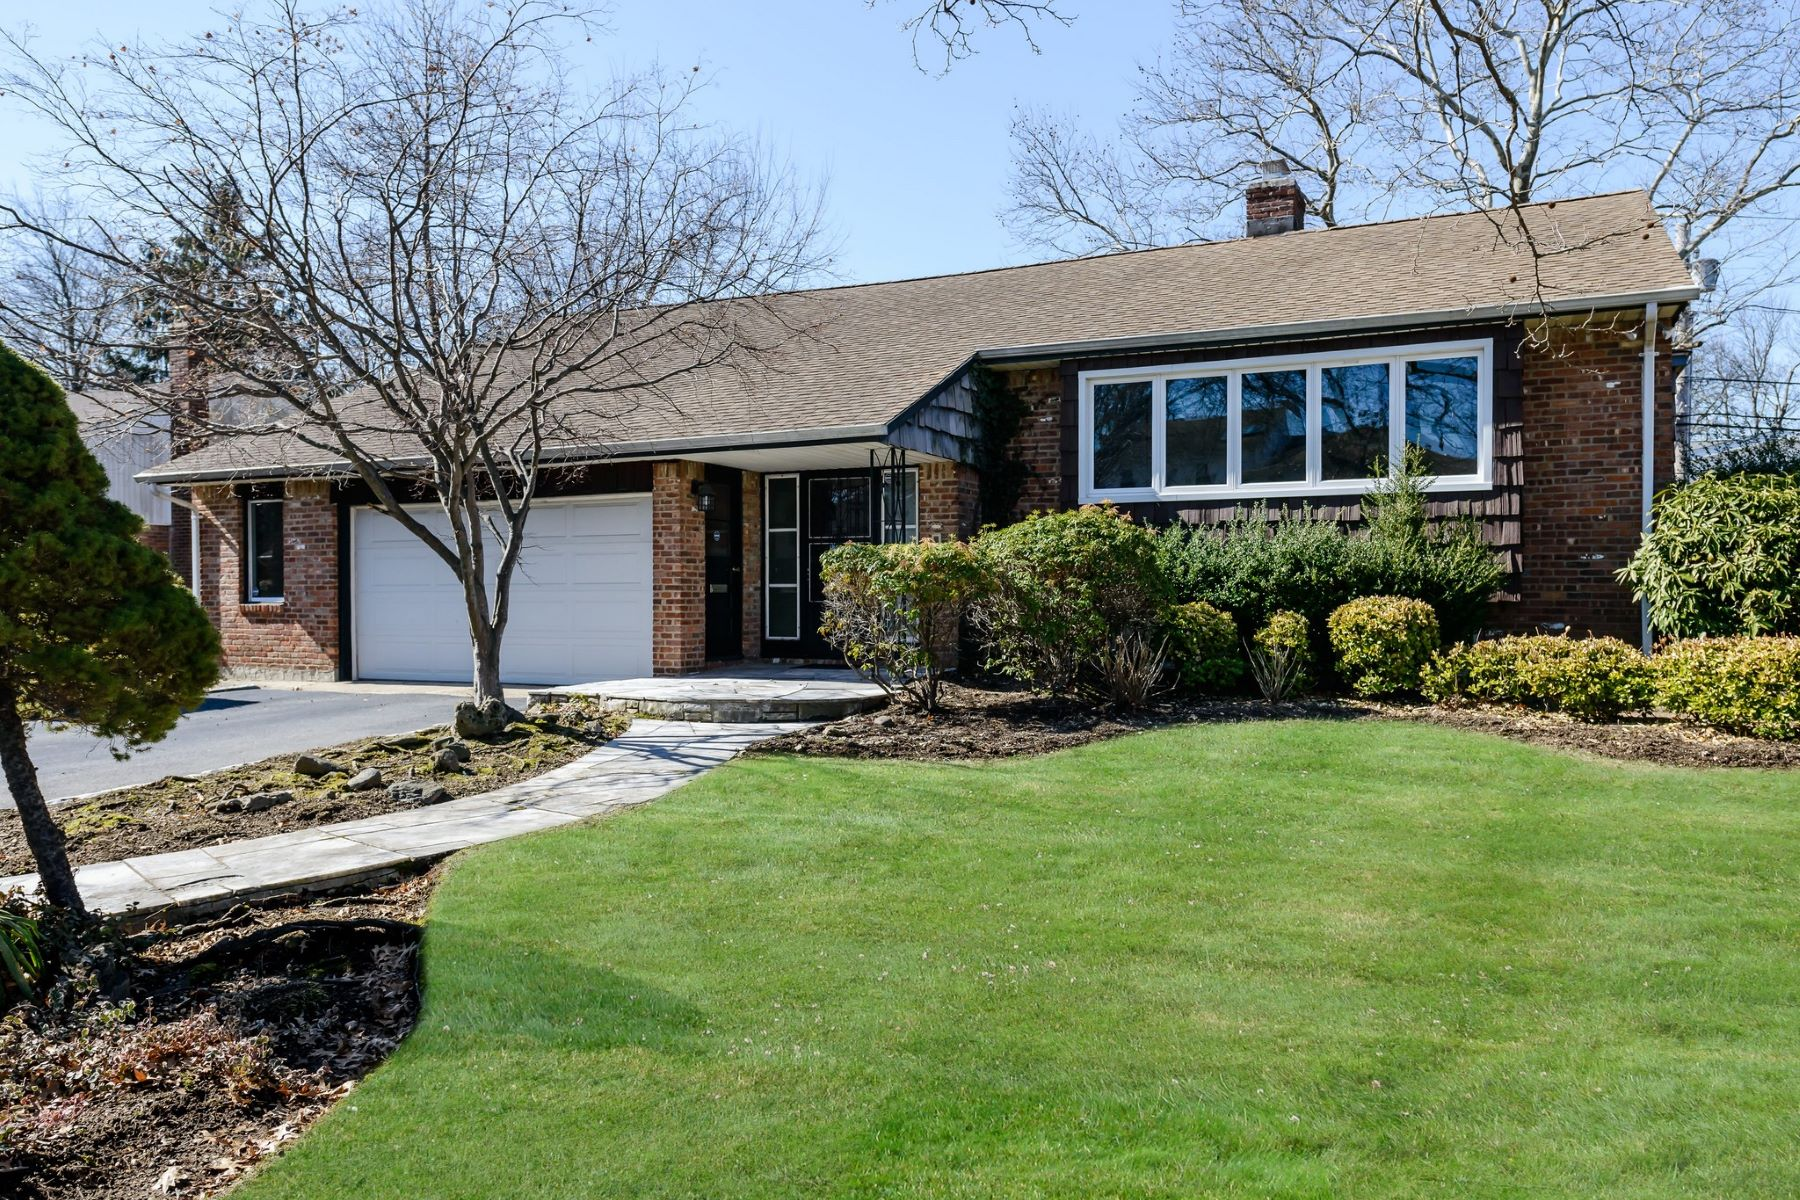 Single Family Home for Sale at 257 Birch Dr , Roslyn, NY 11576 257 Birch Dr, Roslyn, New York, 11576 United States